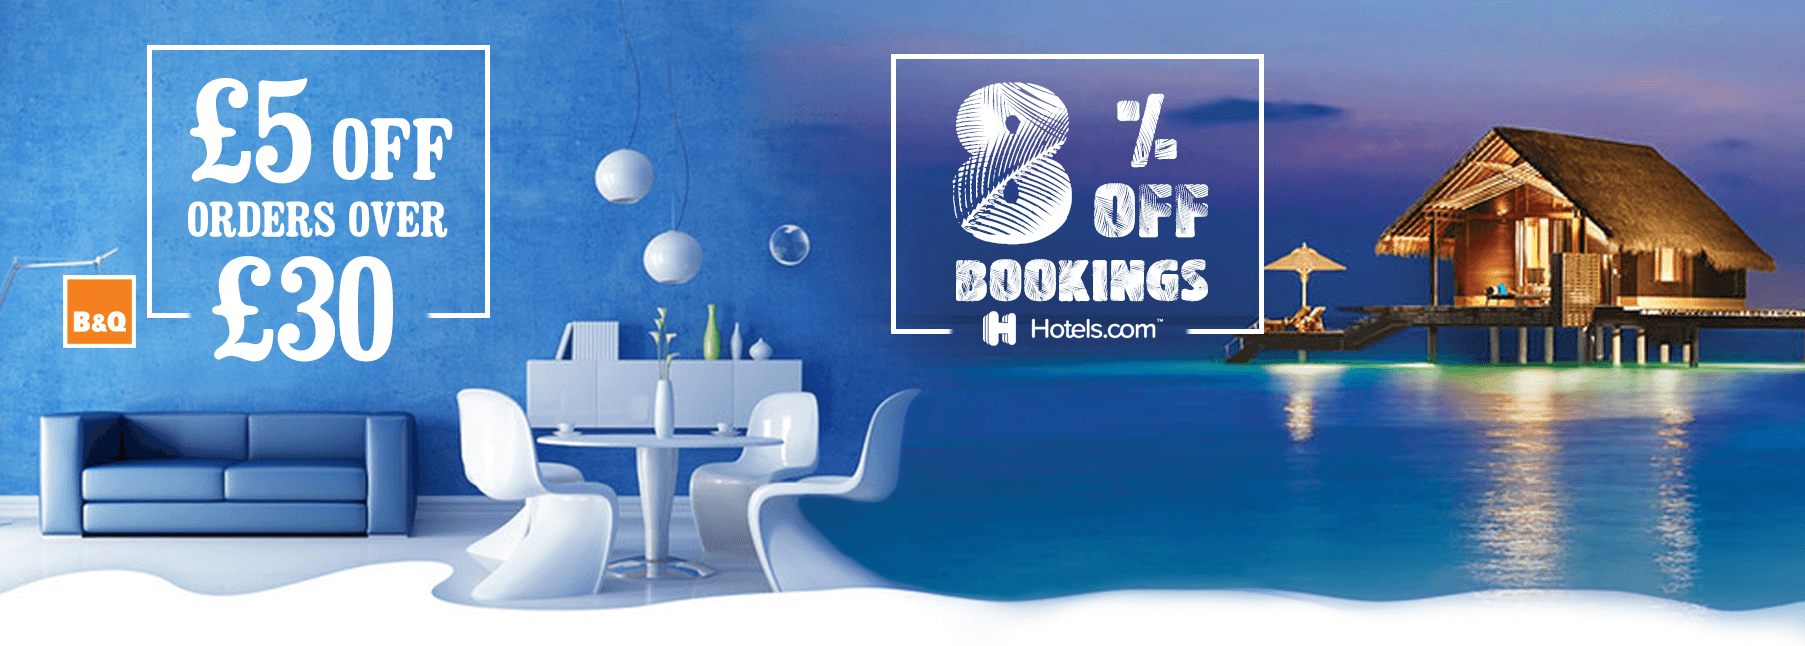 8% Off on Booking at Hotels.com